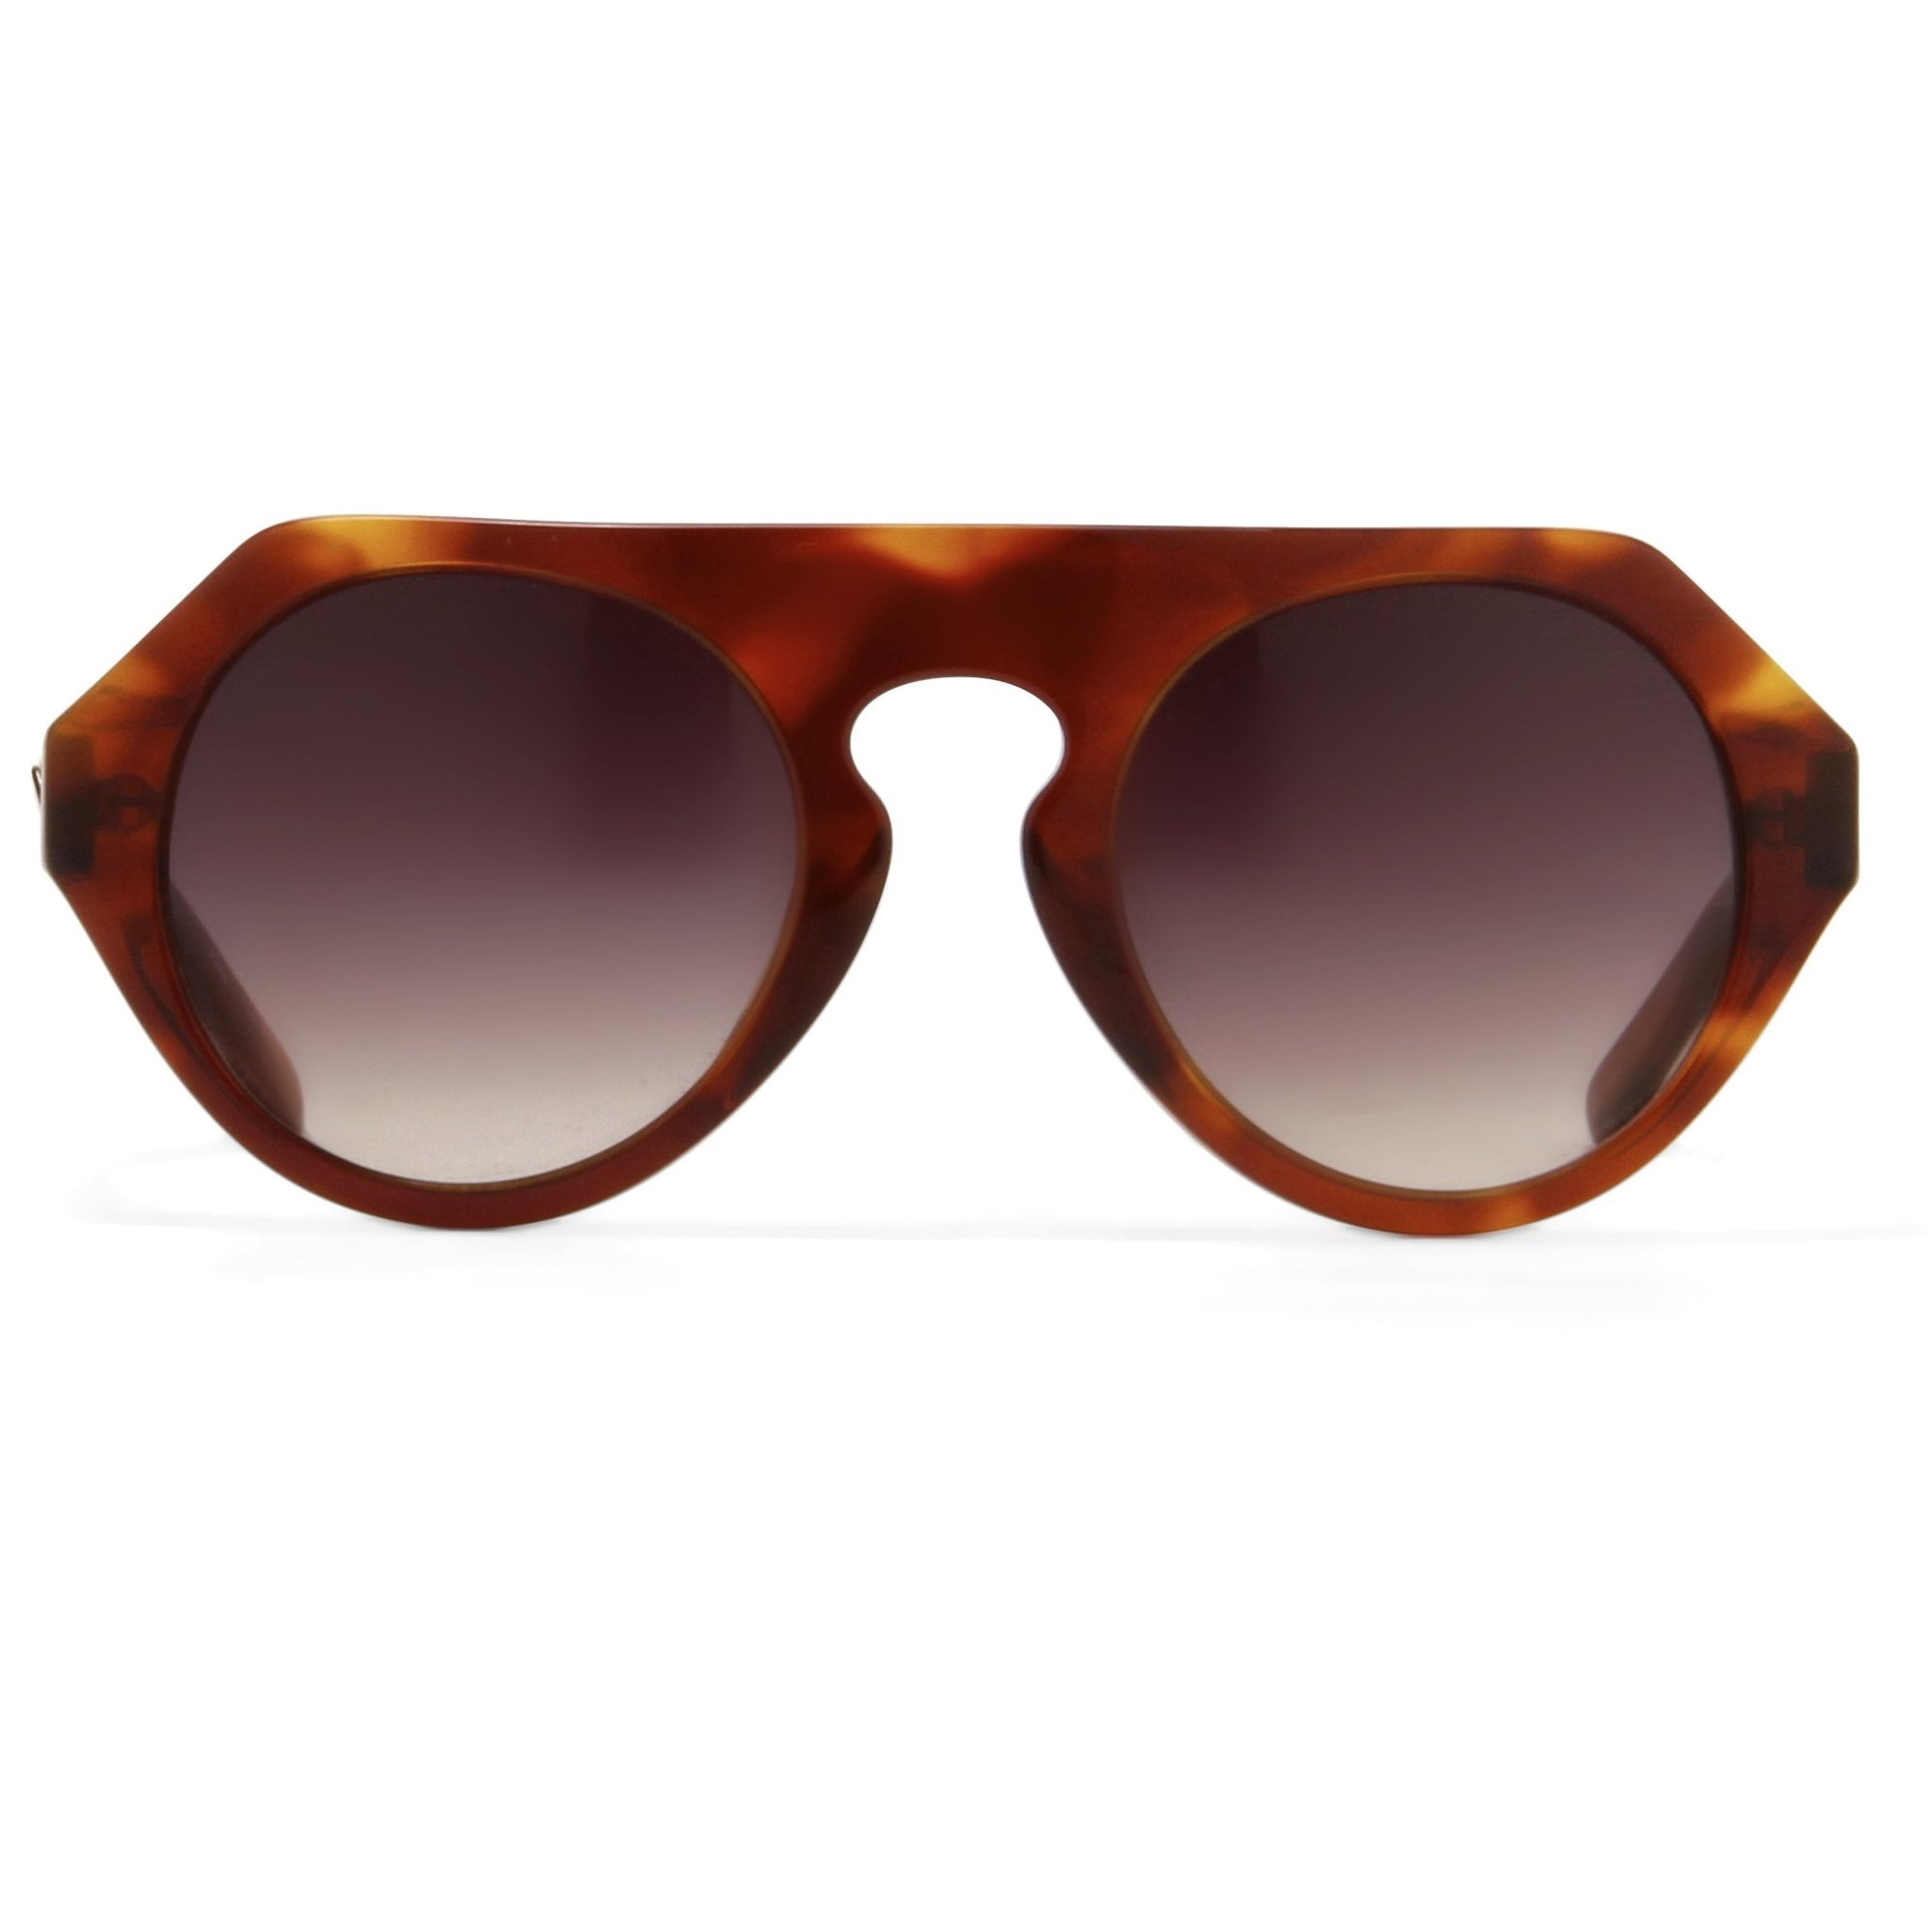 Prabal Gurung Sunglasses Women's Round Flat Top Tortoise Shell Acetate and Light Gold CAT3 Grey Gradient Lenses PG15C2SUN - Watches & Crystals